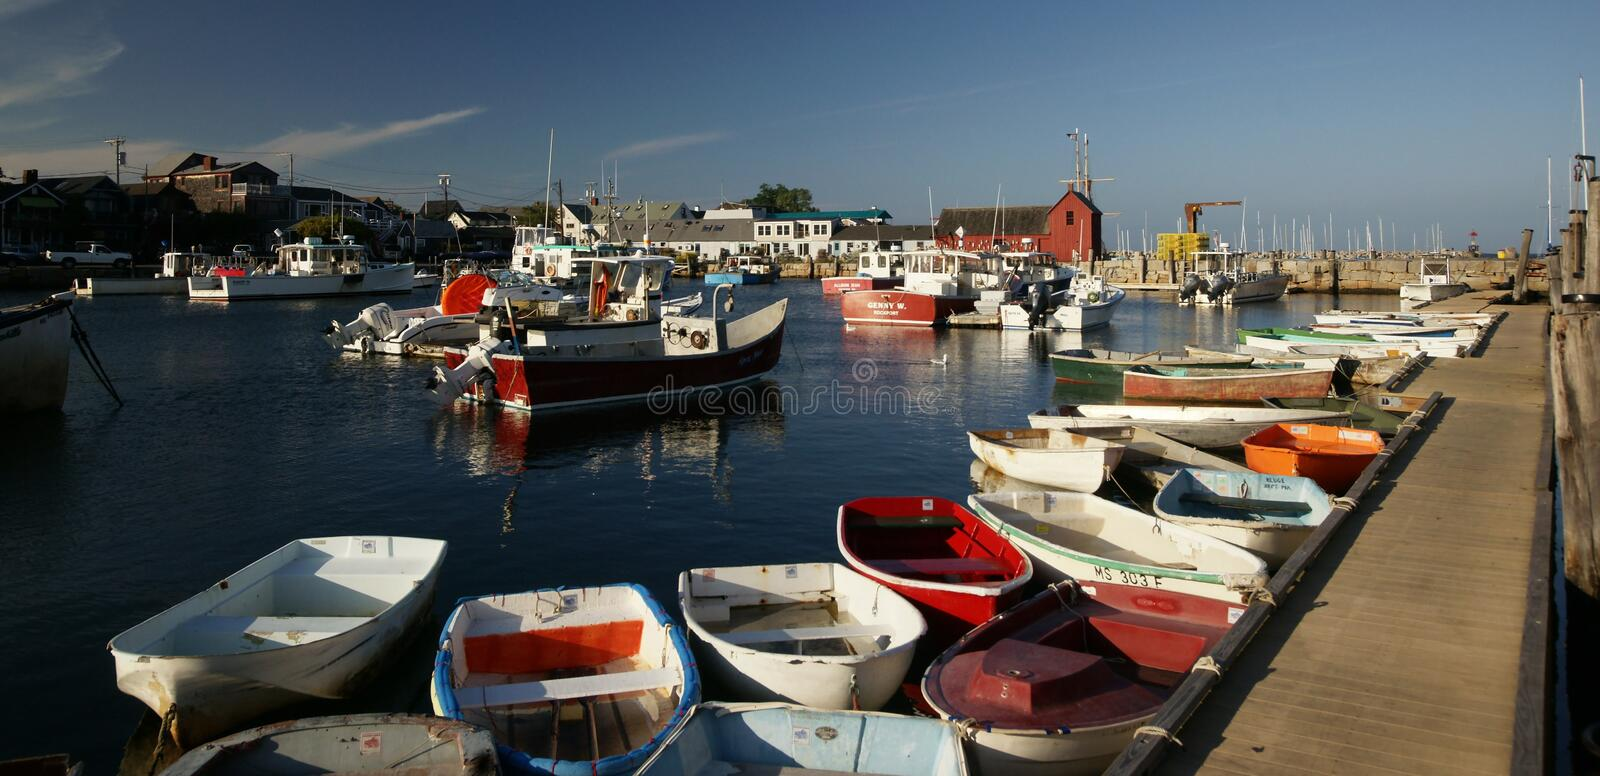 Rockport, mA images stock